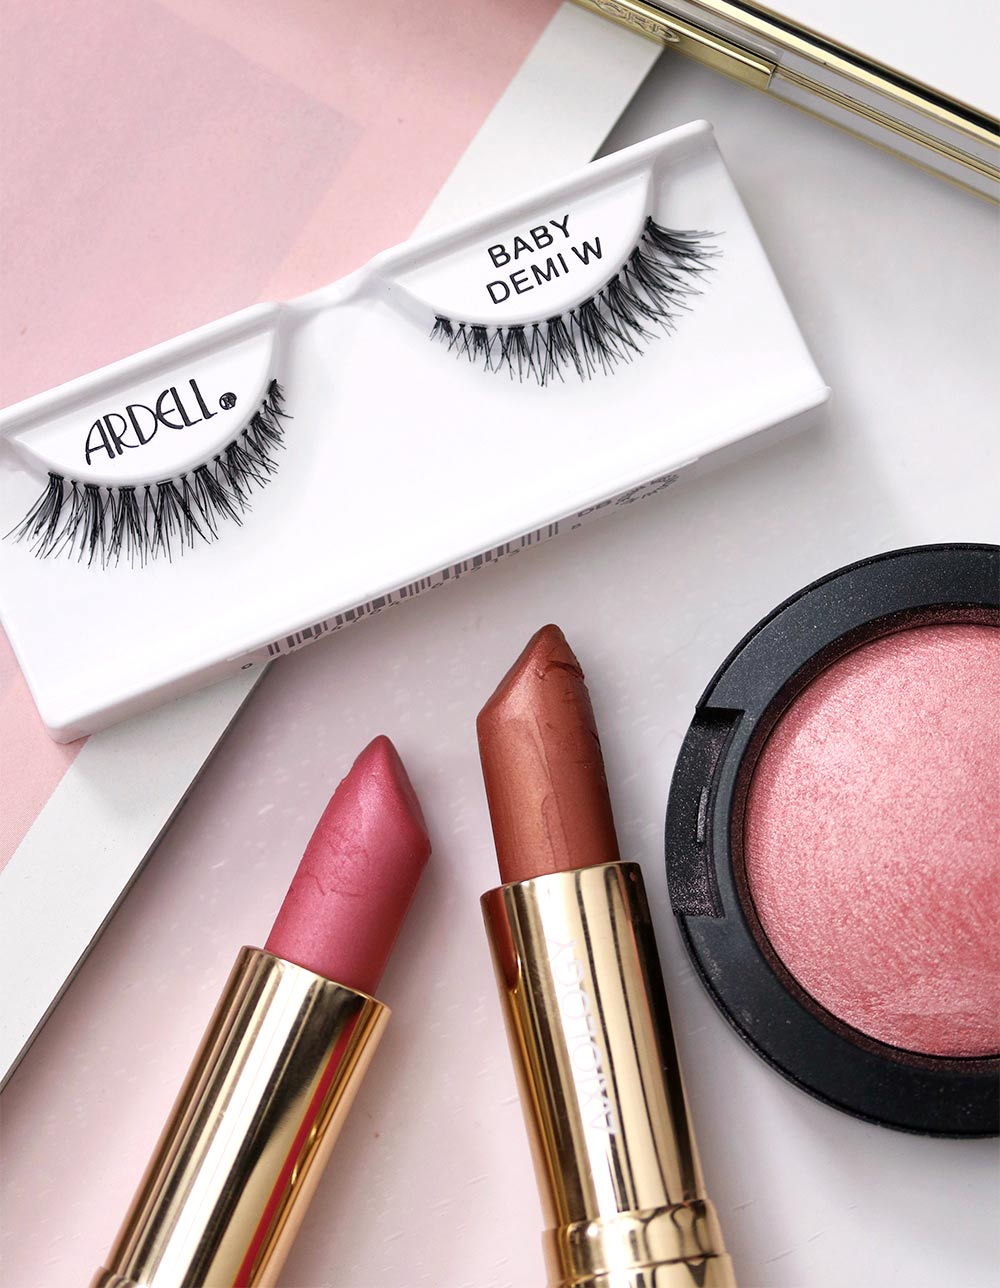 Makeup Heroes: The $5 Ardell Baby Demi Wispies False Lashes - Makeup ...